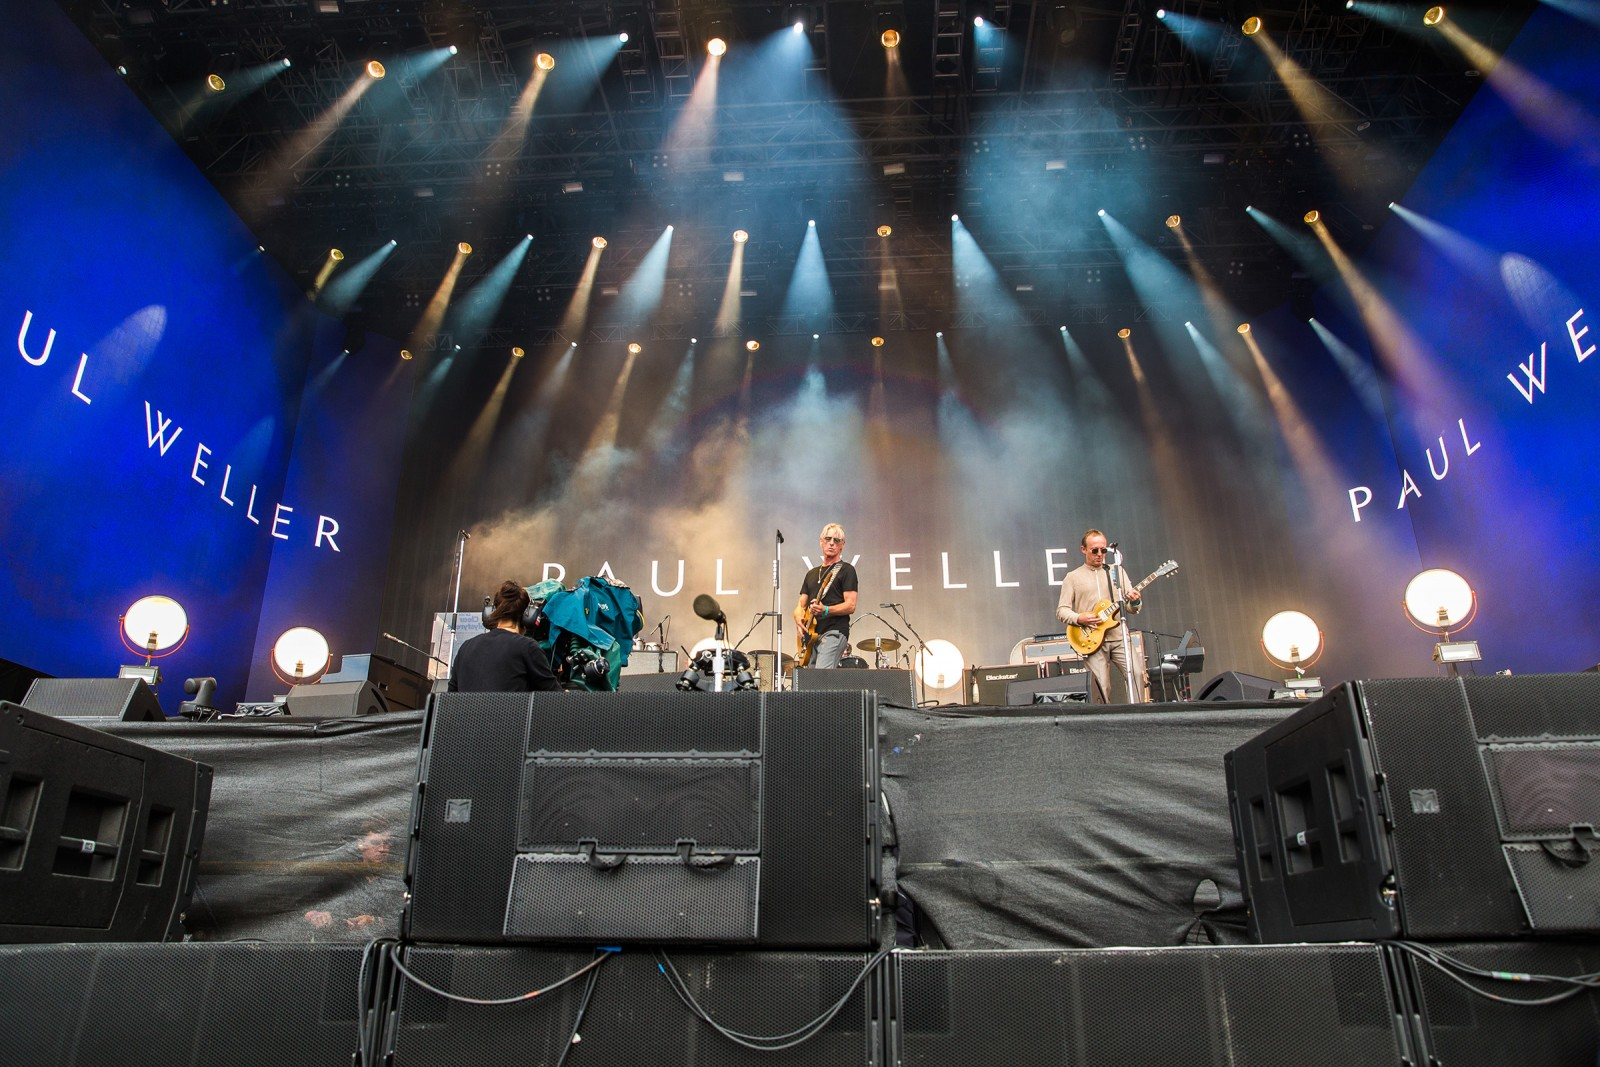 Capital and MLA Make Best Ever Barclaycard BST at Hyde Park